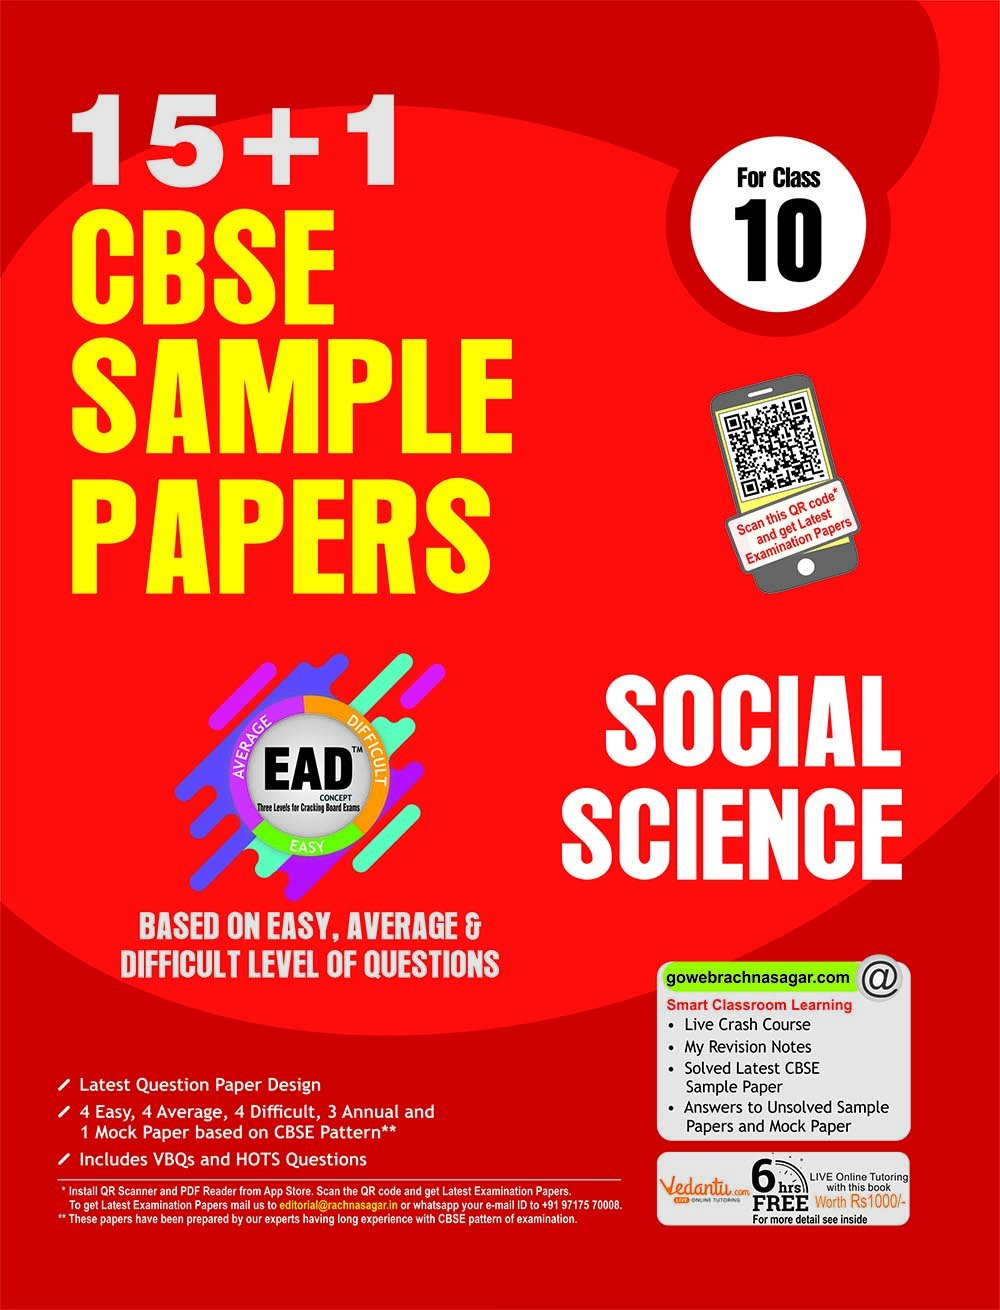 My Free Cbse Guidefree Ebooks Notes Question And Answers Expert Differential Pair Circuit Diagram Tradeoficcom Together With Sample Papers 15 1 For Class 10 Ead Social Rh Amazon In